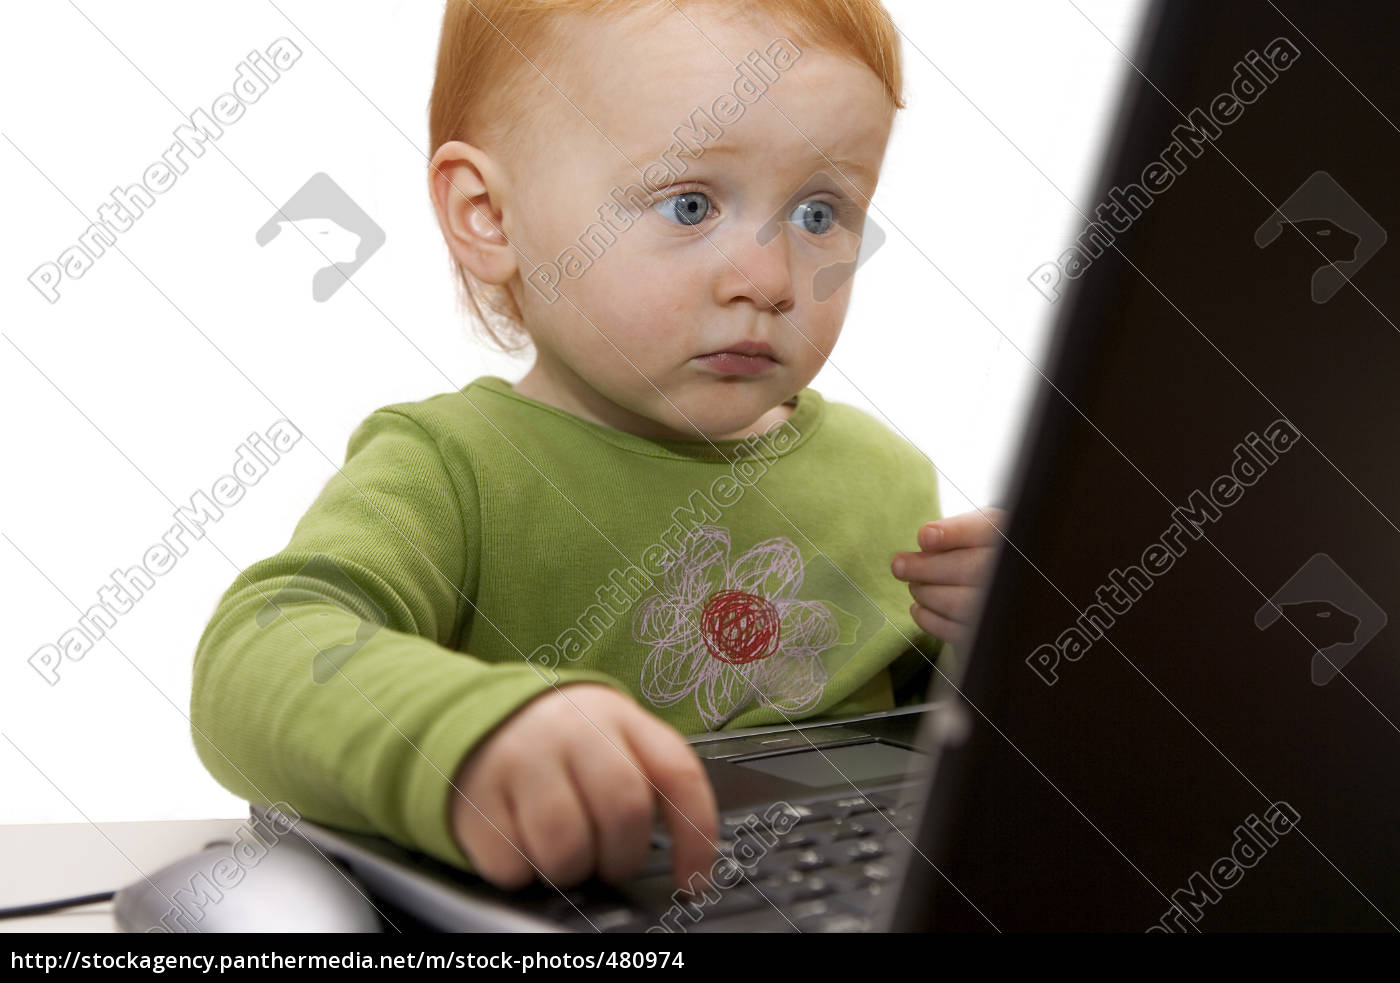 child, on, laptop - 480974